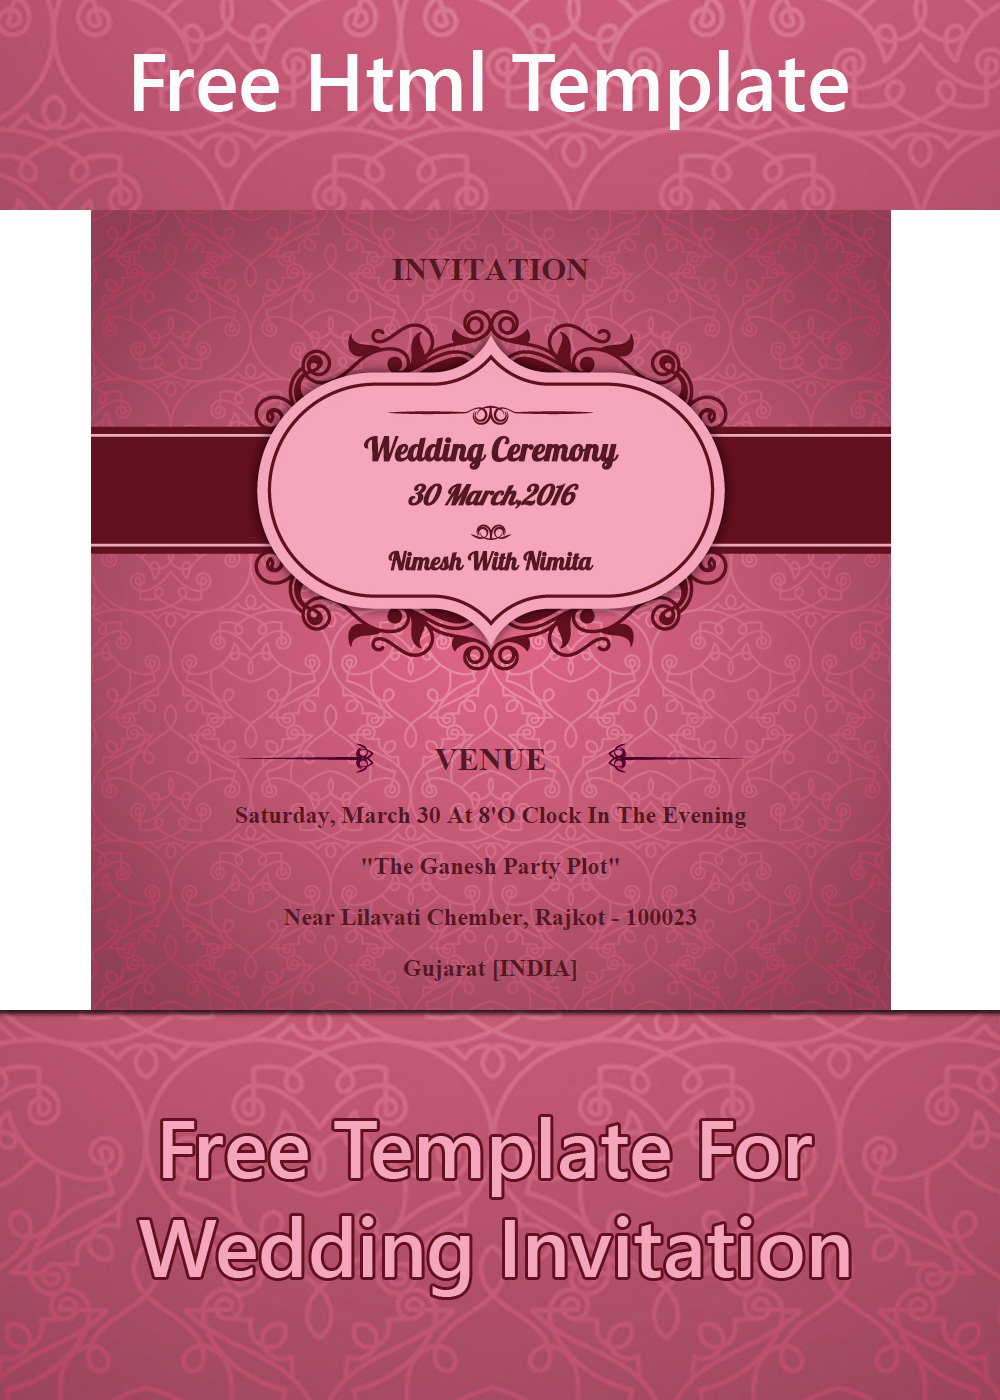 free printable wedding invitation templates.html